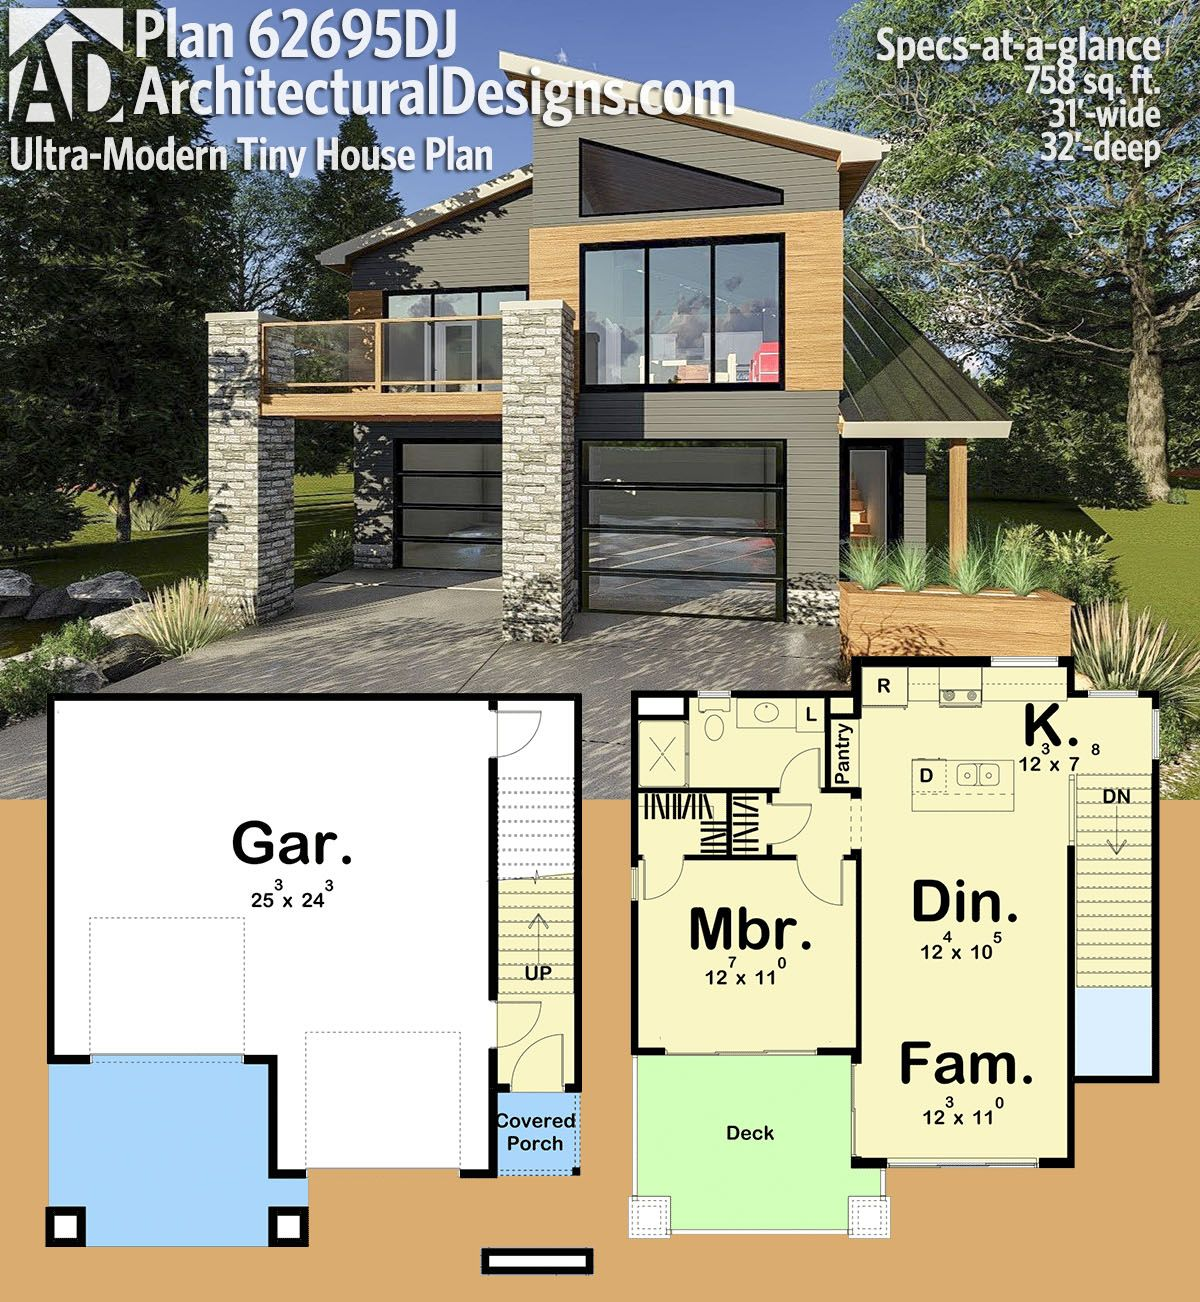 Tiny House With Garage Plans Plan 62695dj Ultra Modern Tiny House Plan In 2019 Home Design